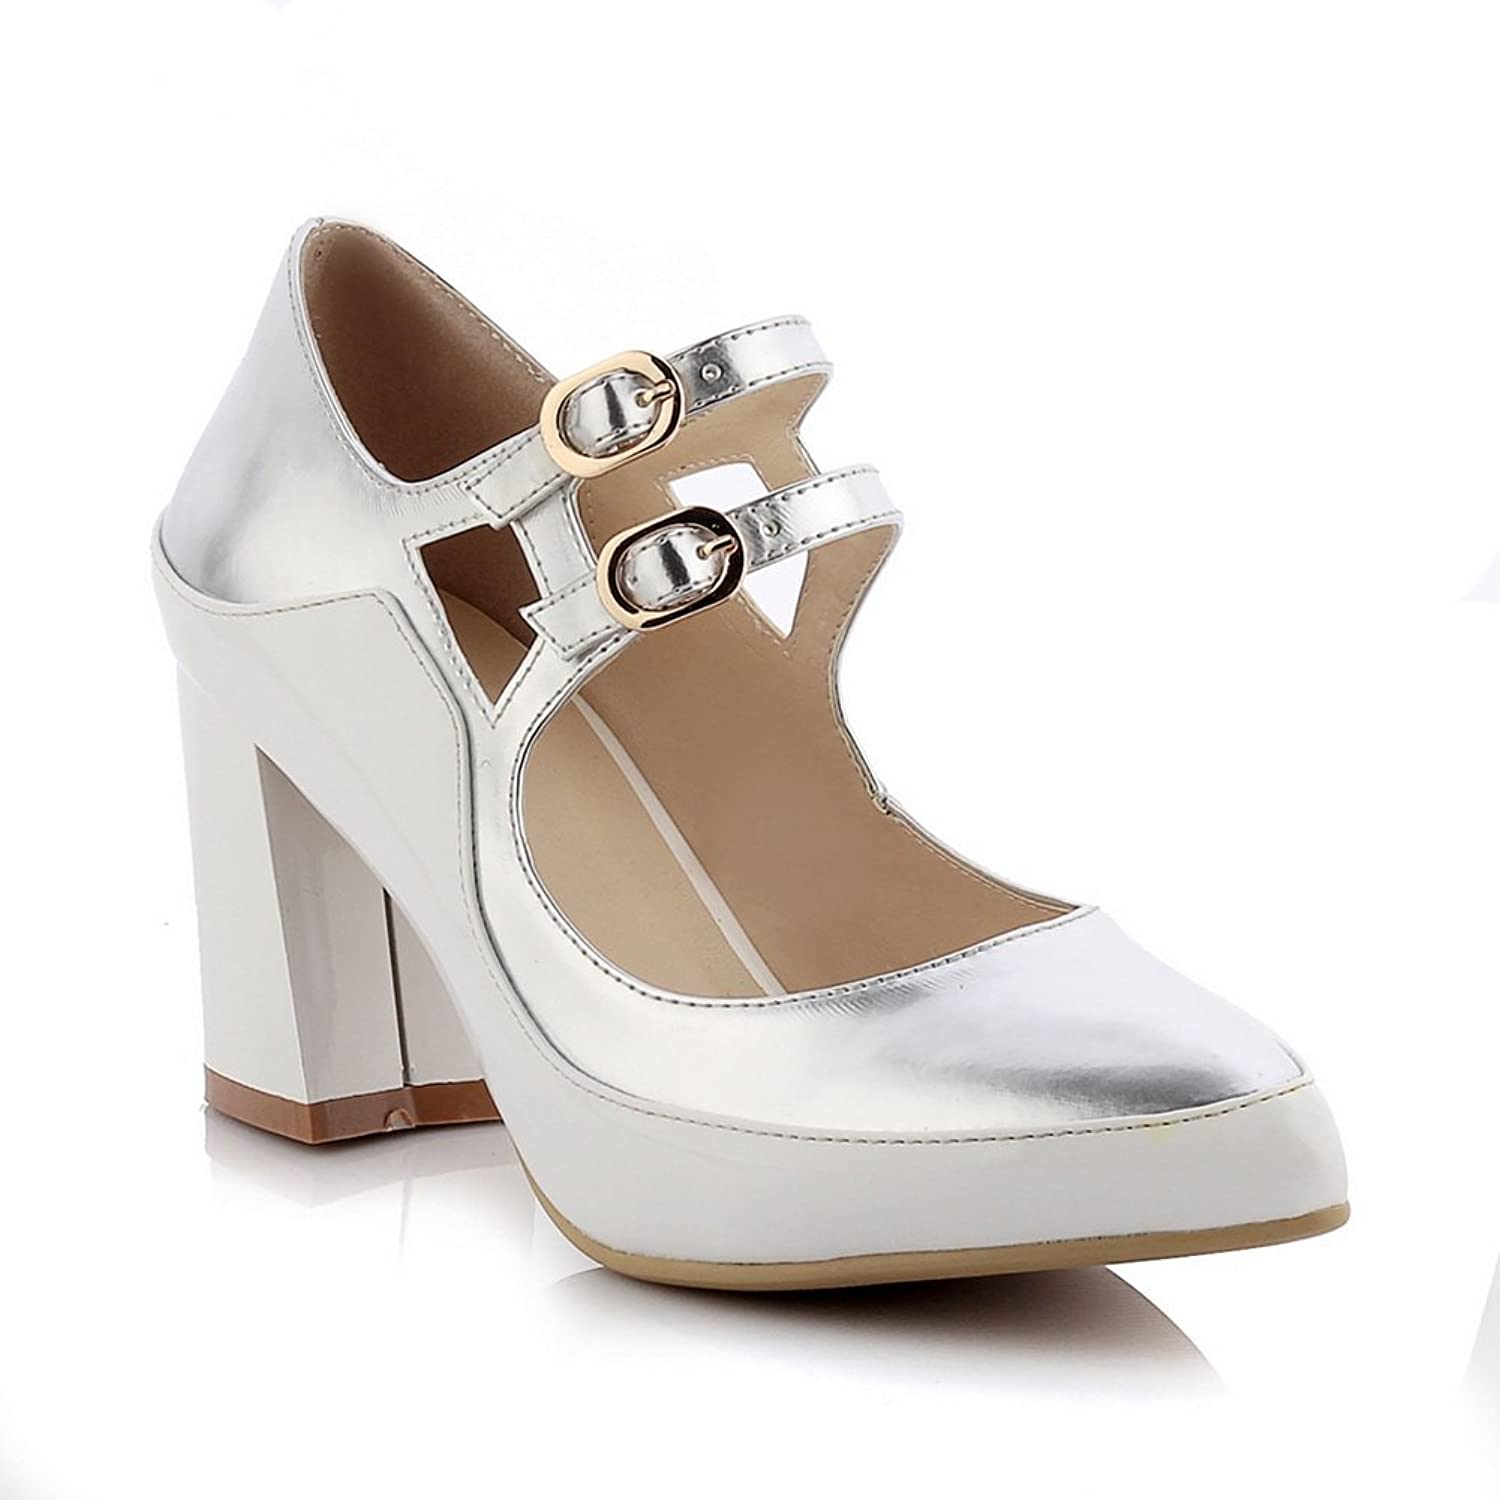 1TO9 Womens Chunky Heels Metal Buckles Buckle Pointed-Toe Microfiber Pumps shoes MMS03391